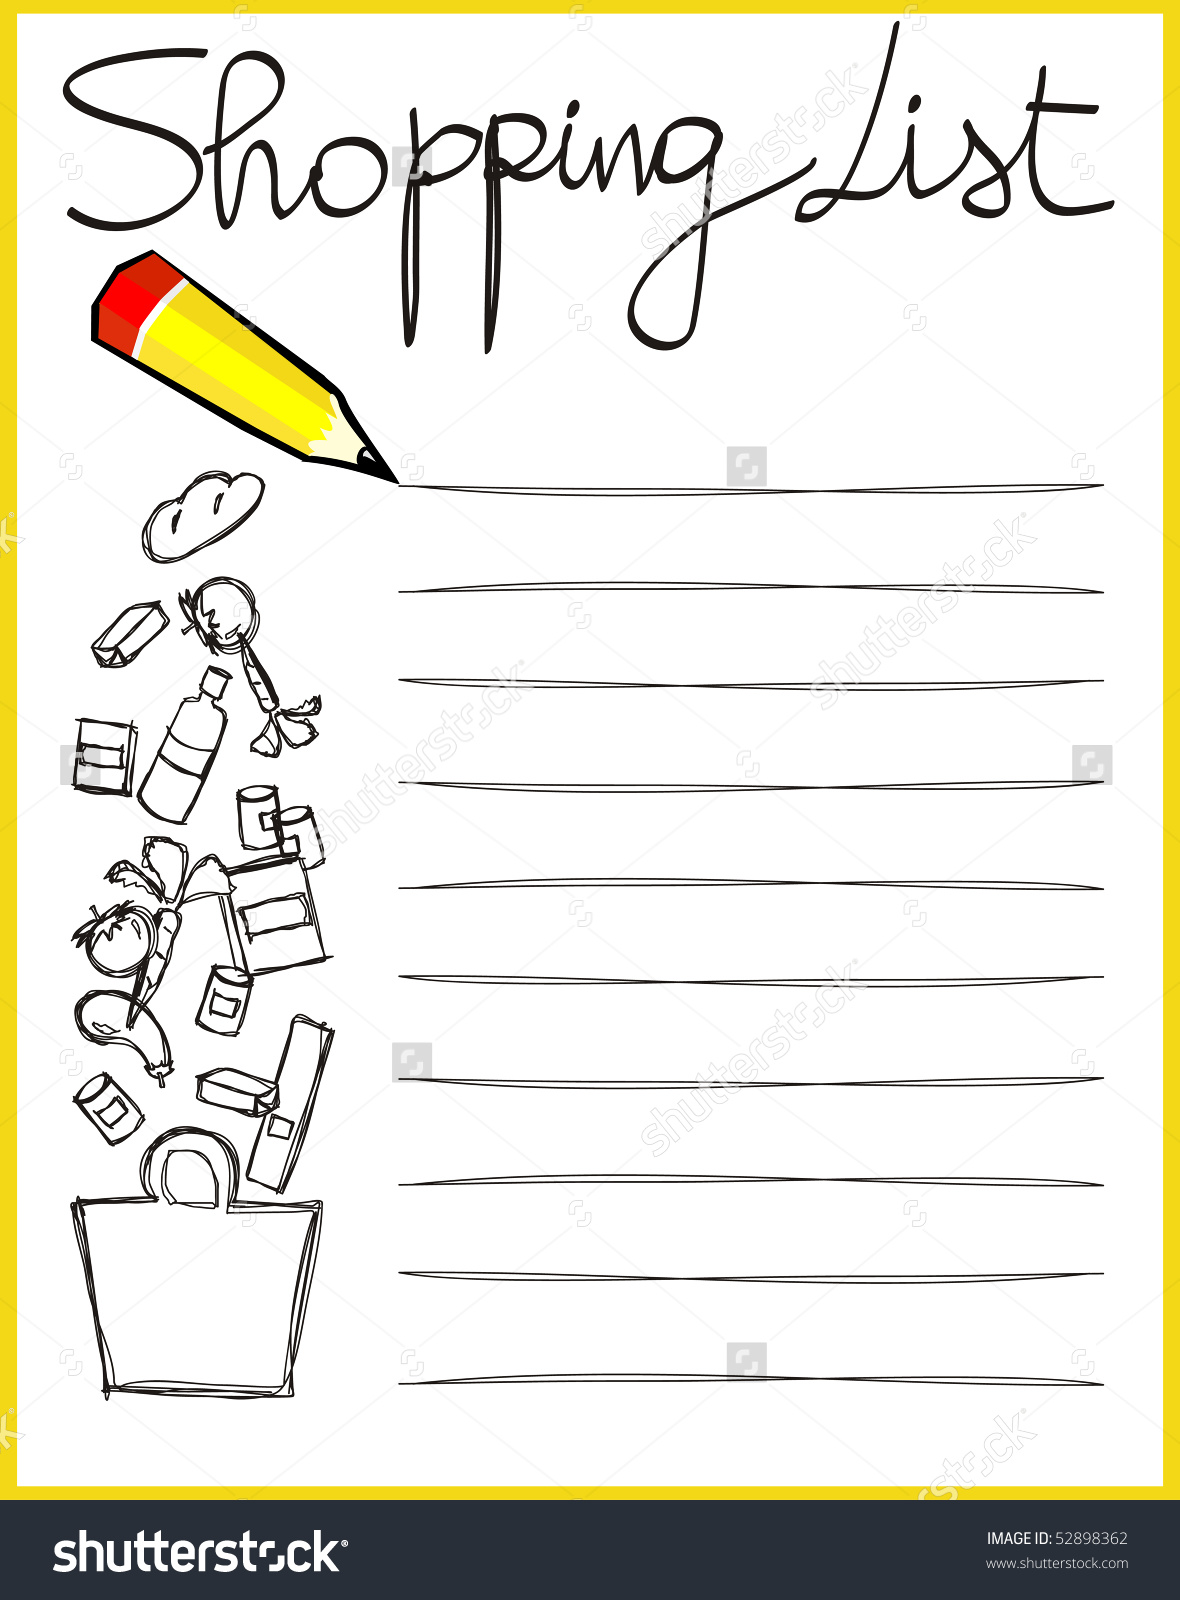 Shopping List Clipart Clipground